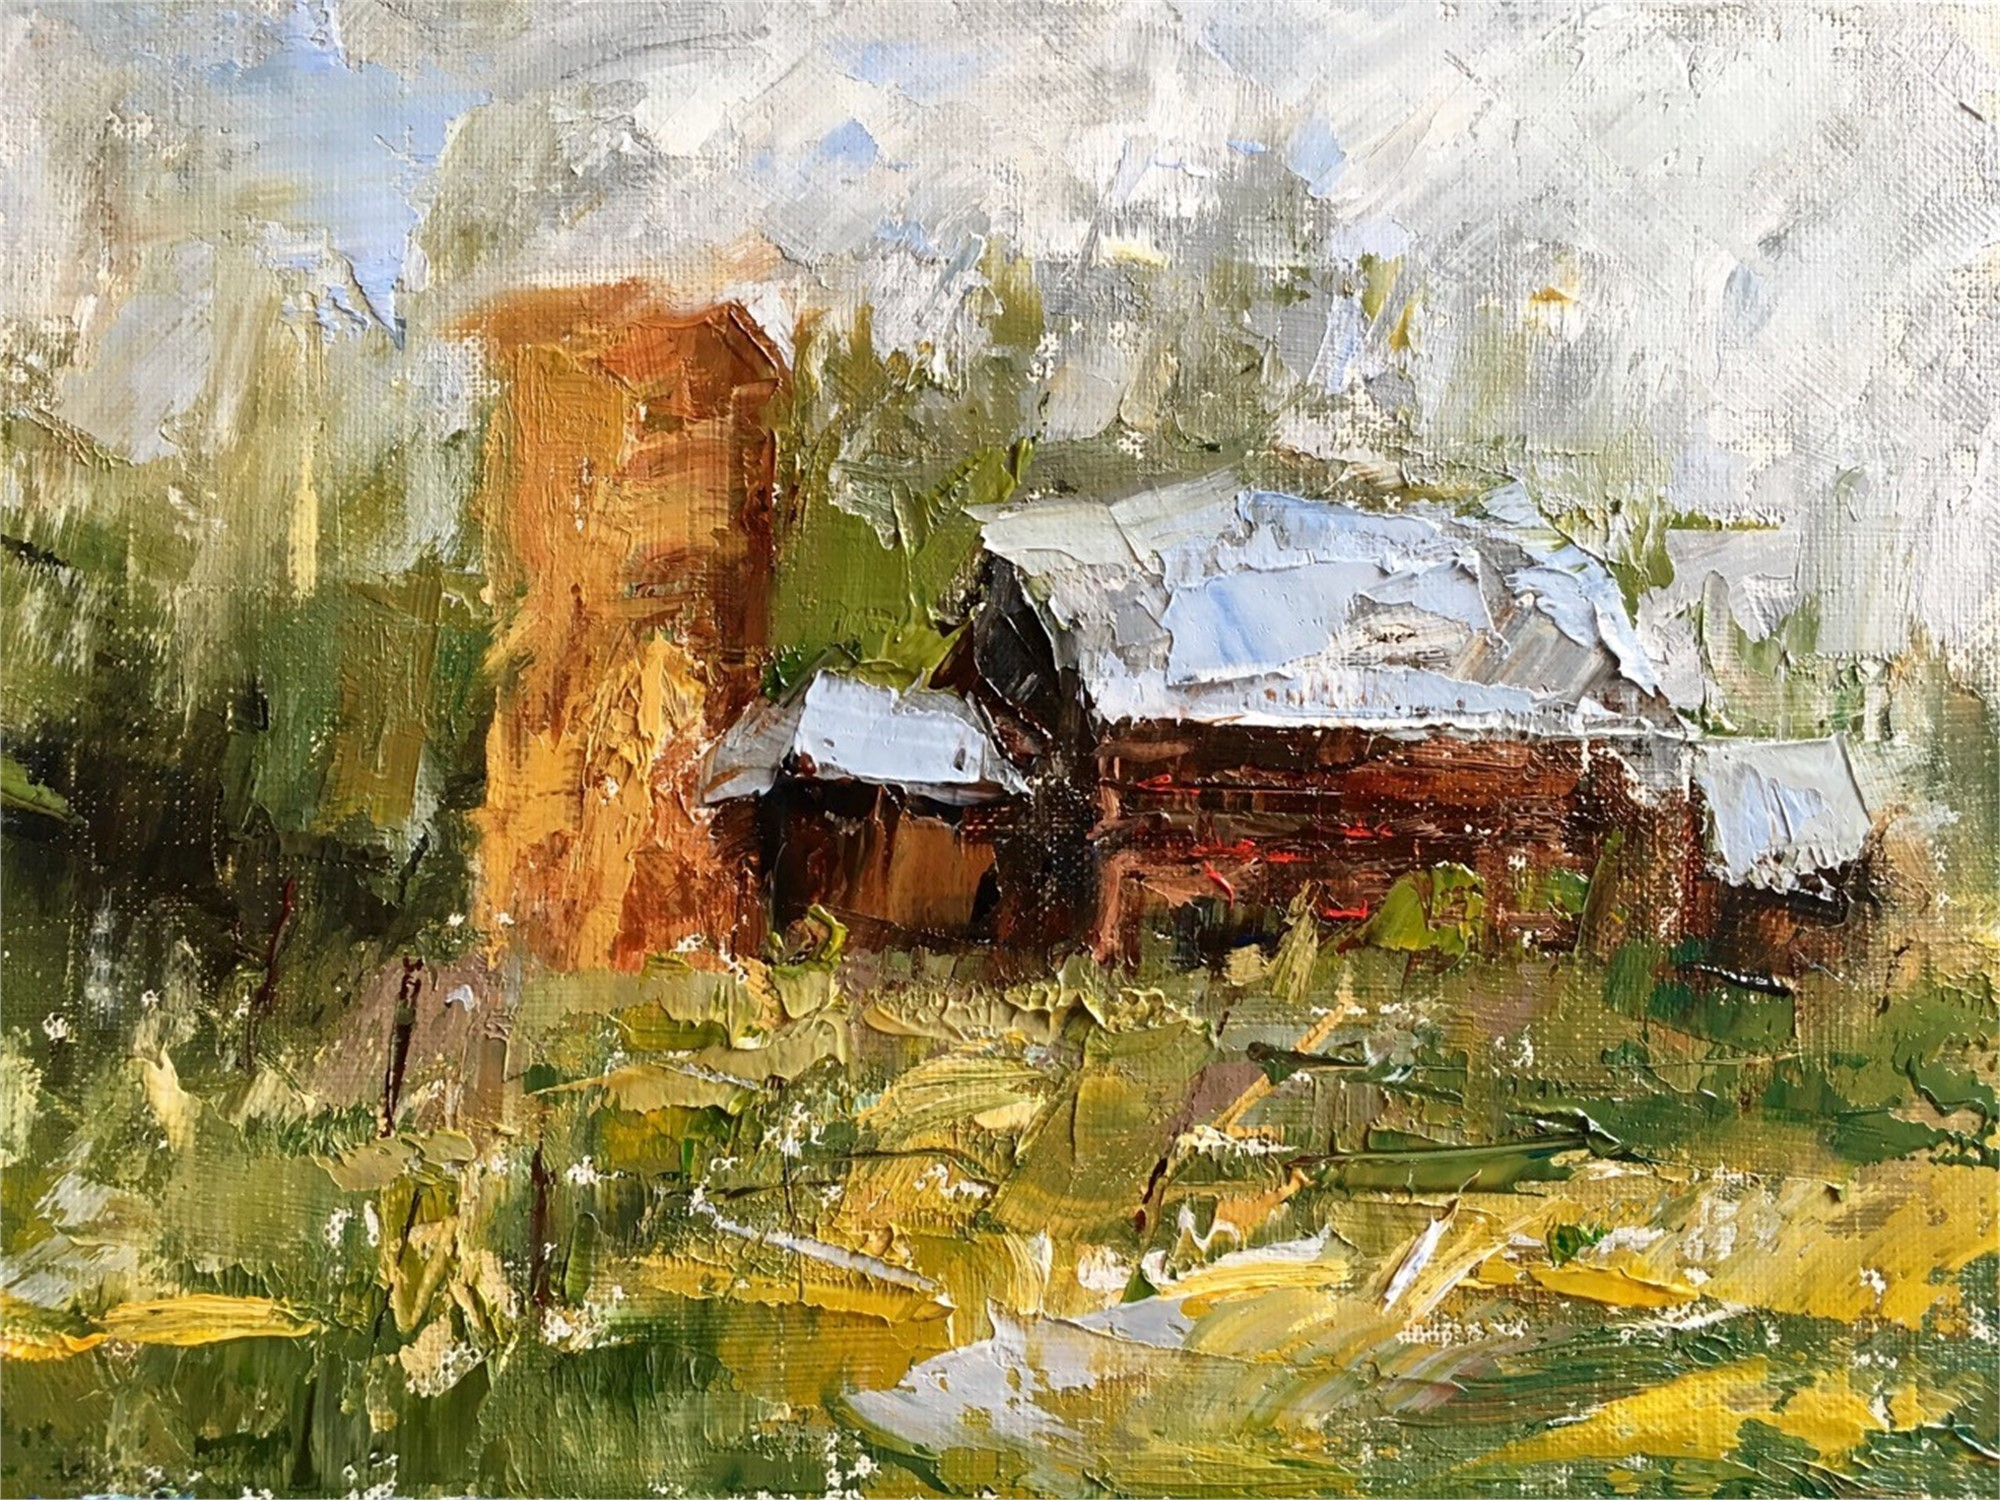 Homestead by Sandra Pratt